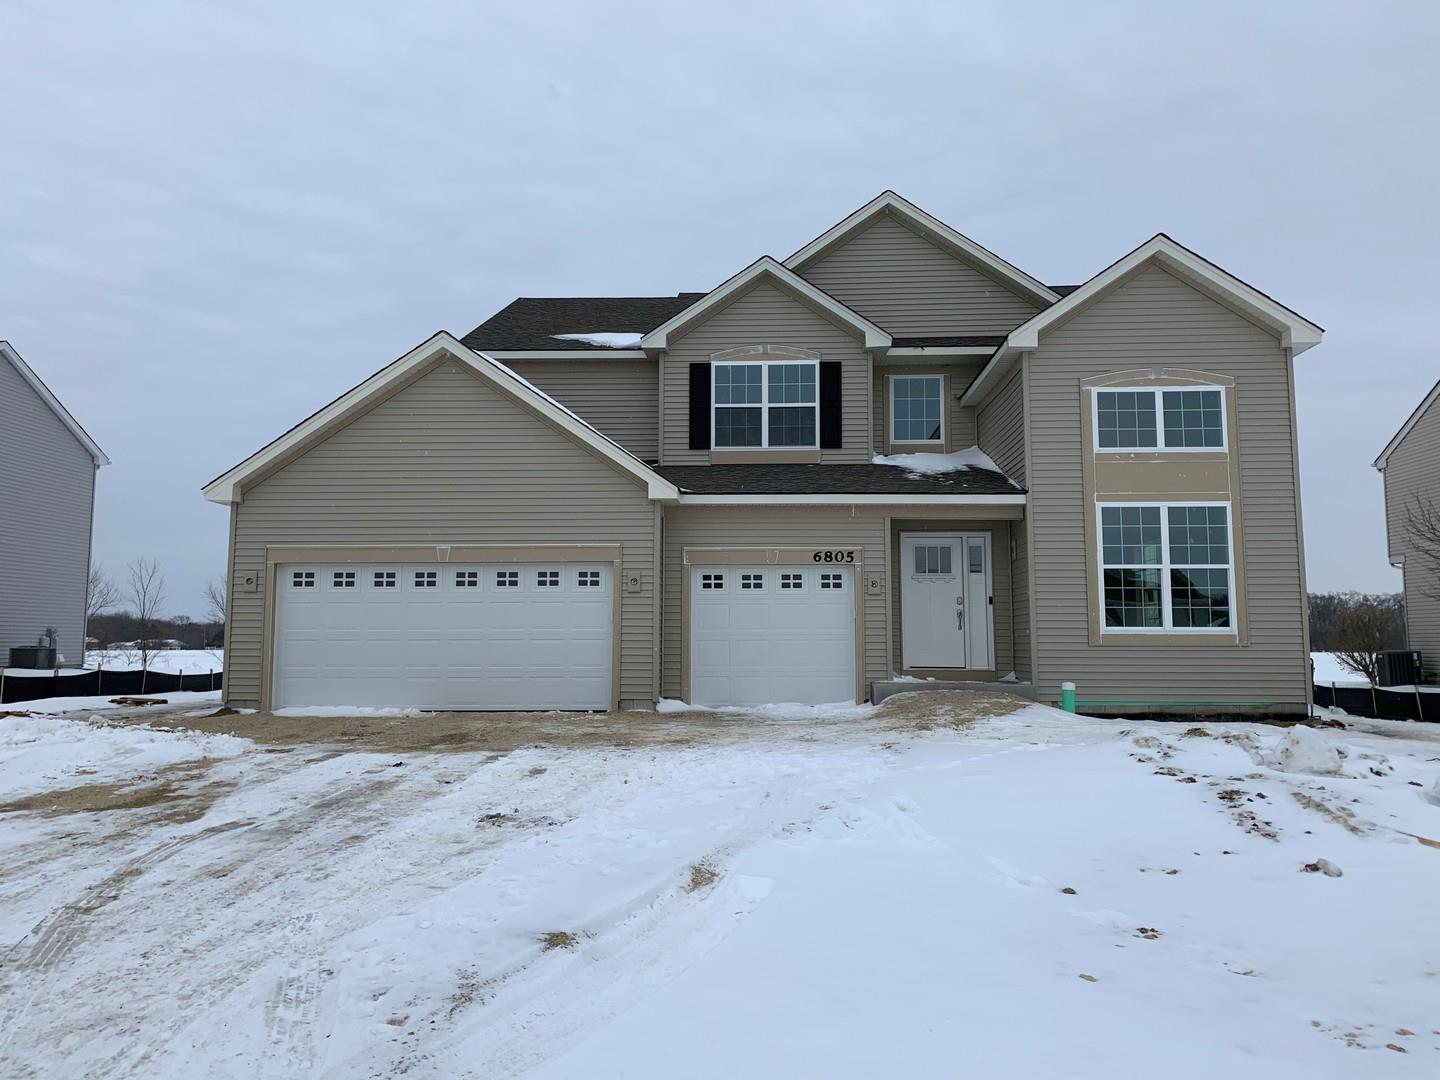 6805 Galway Drive, McHenry, IL 60050 - #: 10987602